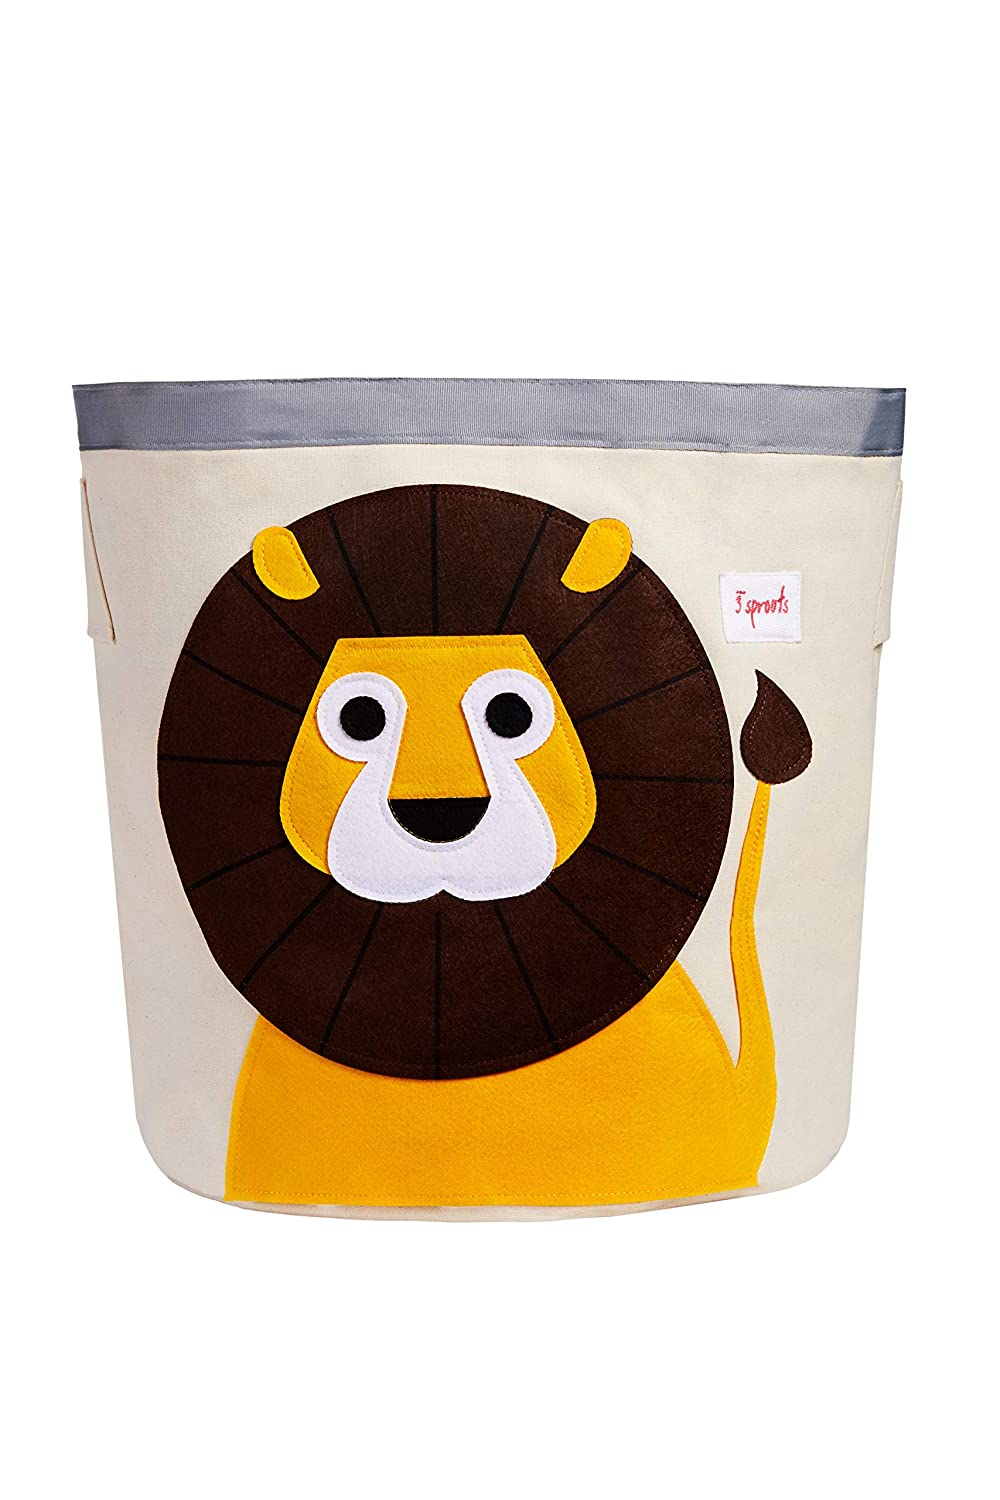 Laundry and Toy Basket for Baby and Kids 3 Sprouts Canvas Storage Bin